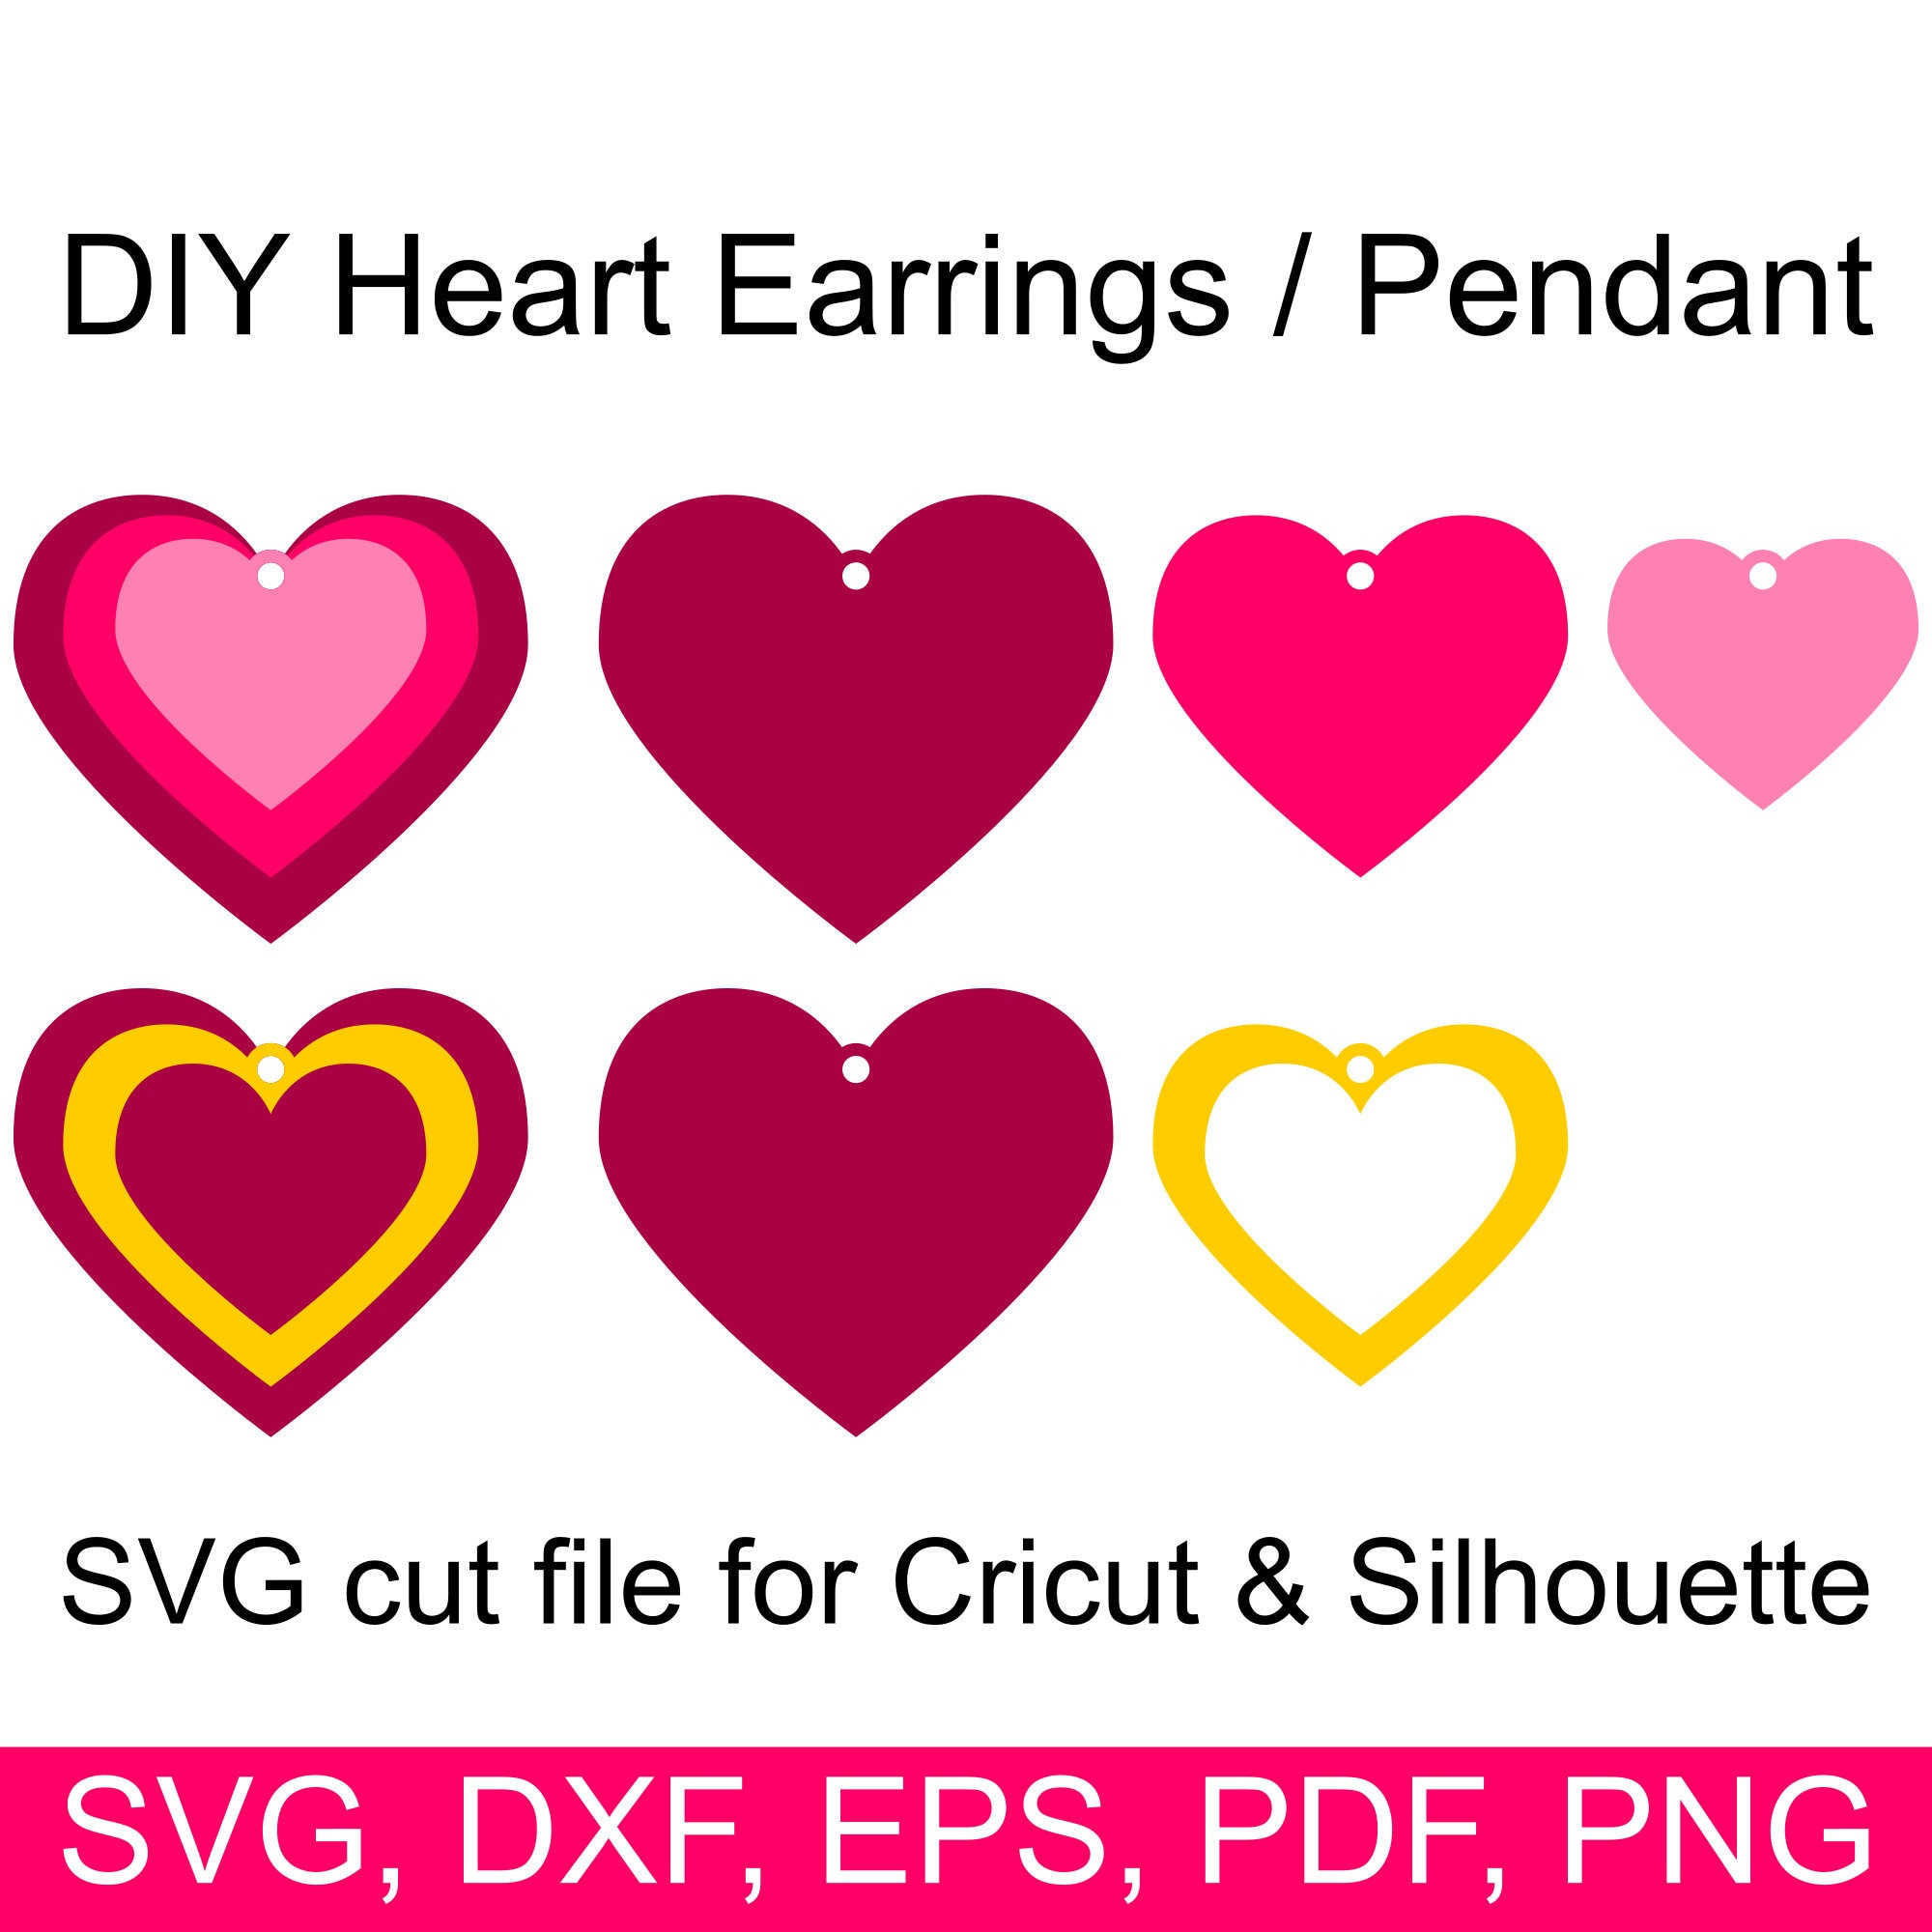 Stacked heart earrings SVG